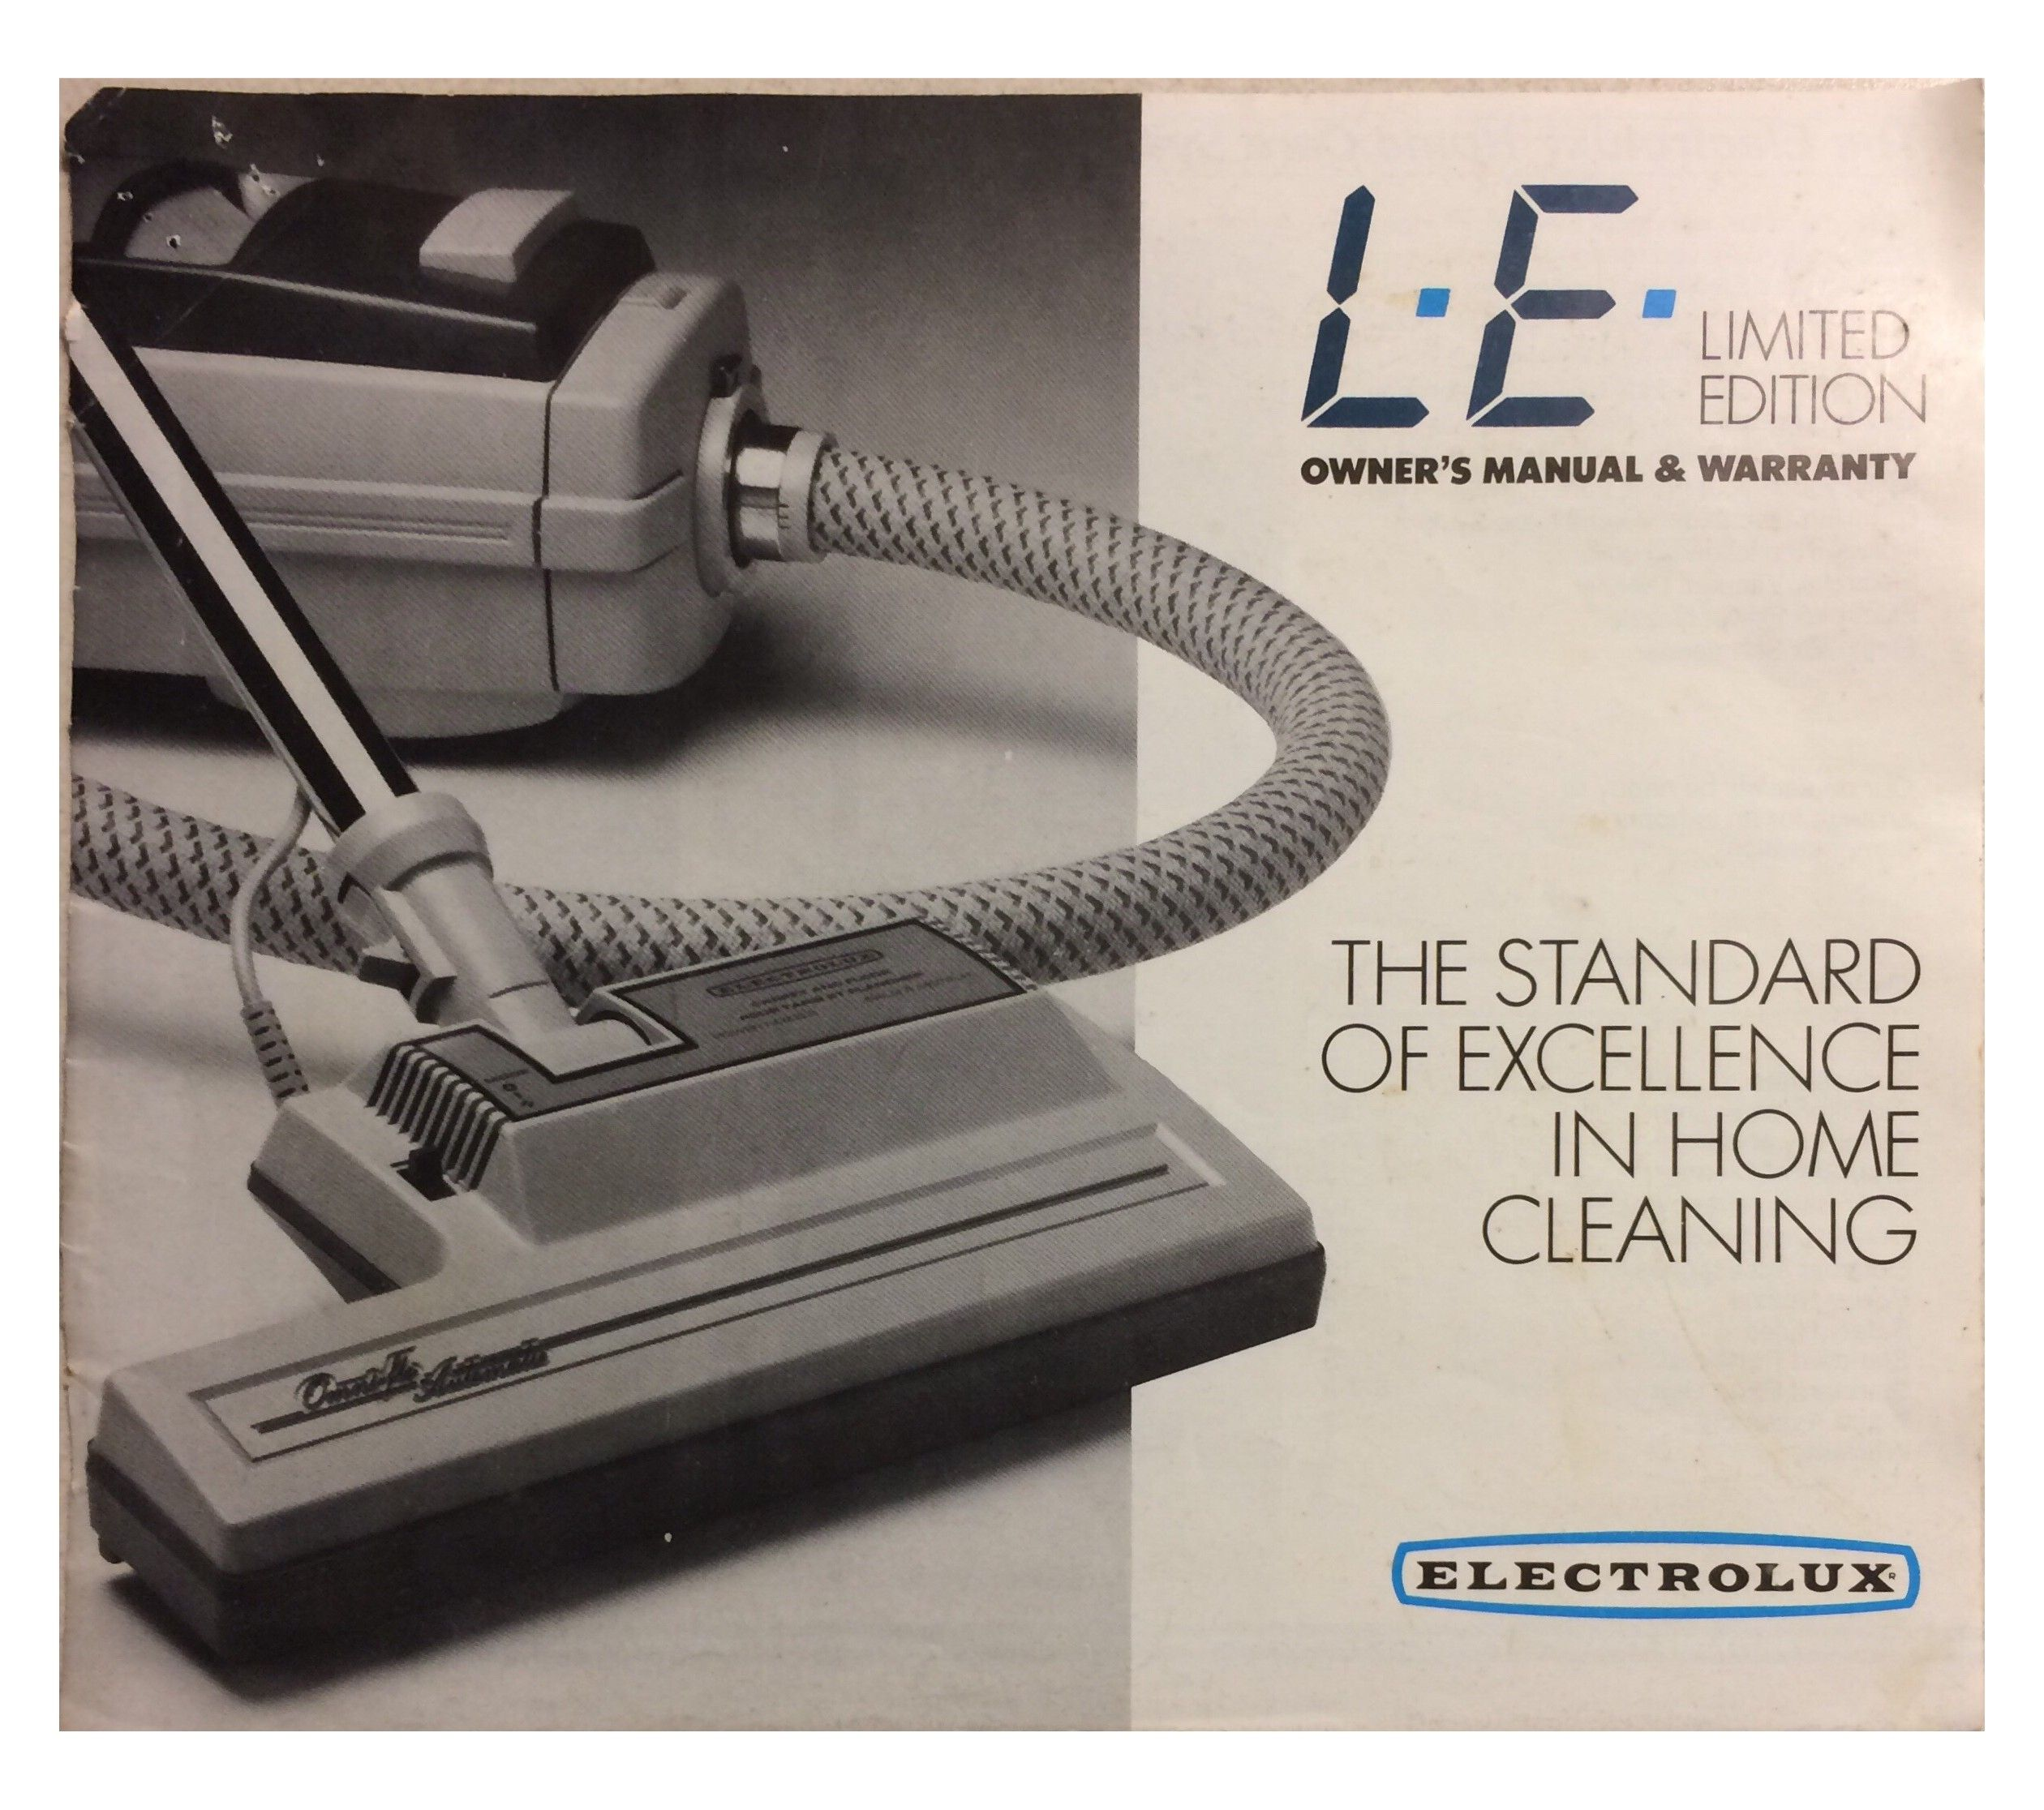 small resolution of le electrolux limited edition vacuum cleaner manual pg 1